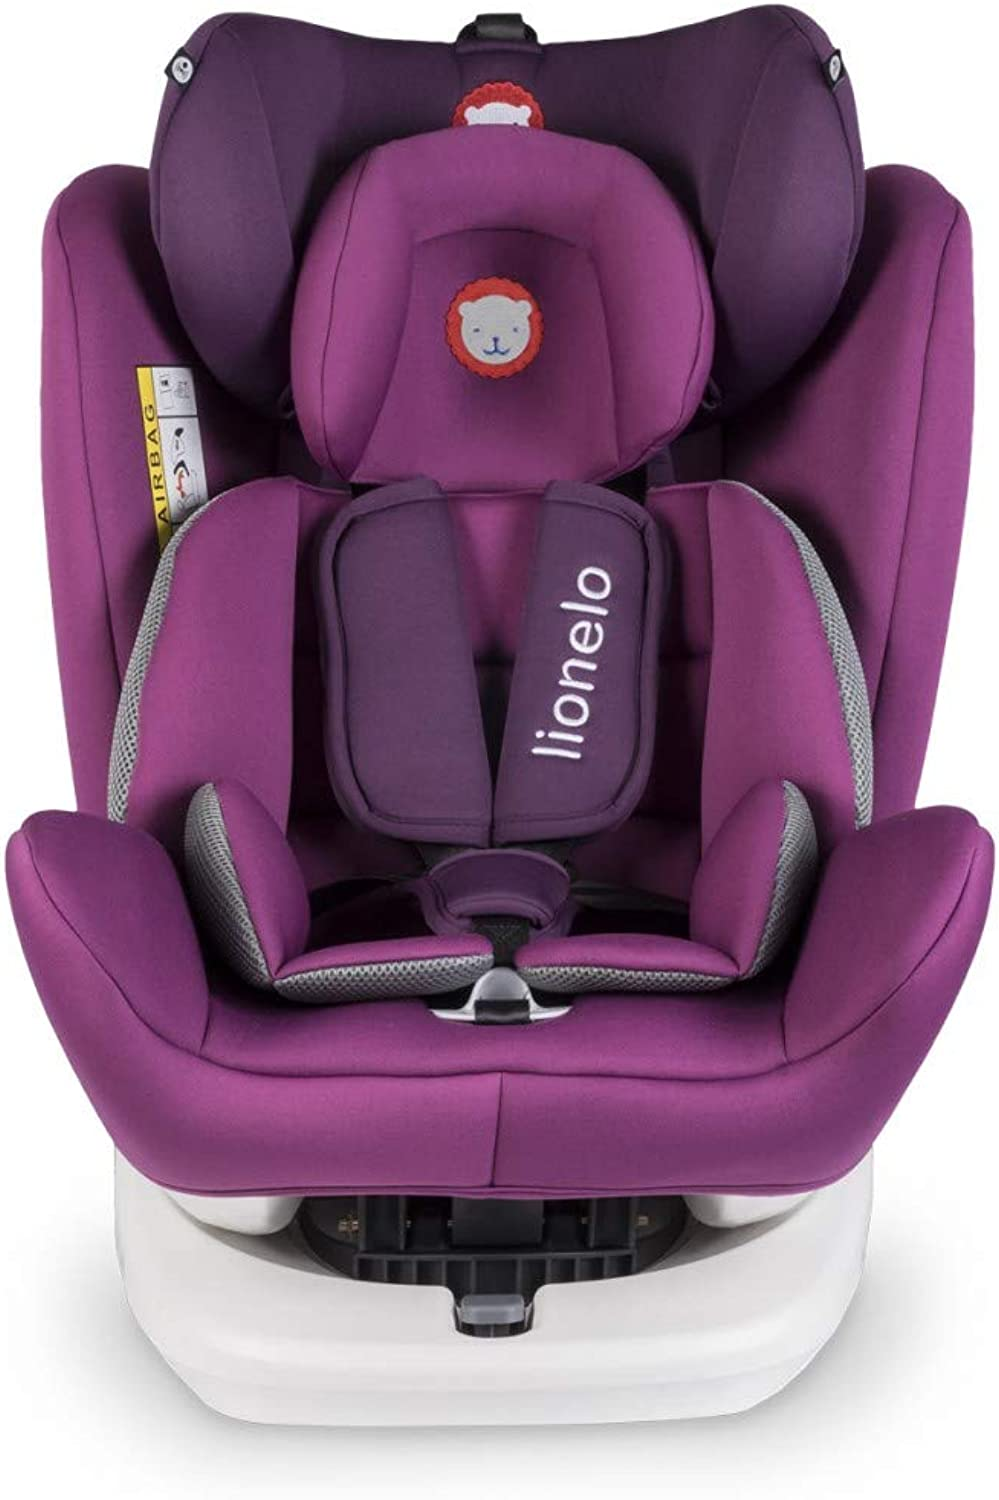 Lionelo 5902581654229 Lo-Bastiaan purple Car Safety Seat, Multi-colors